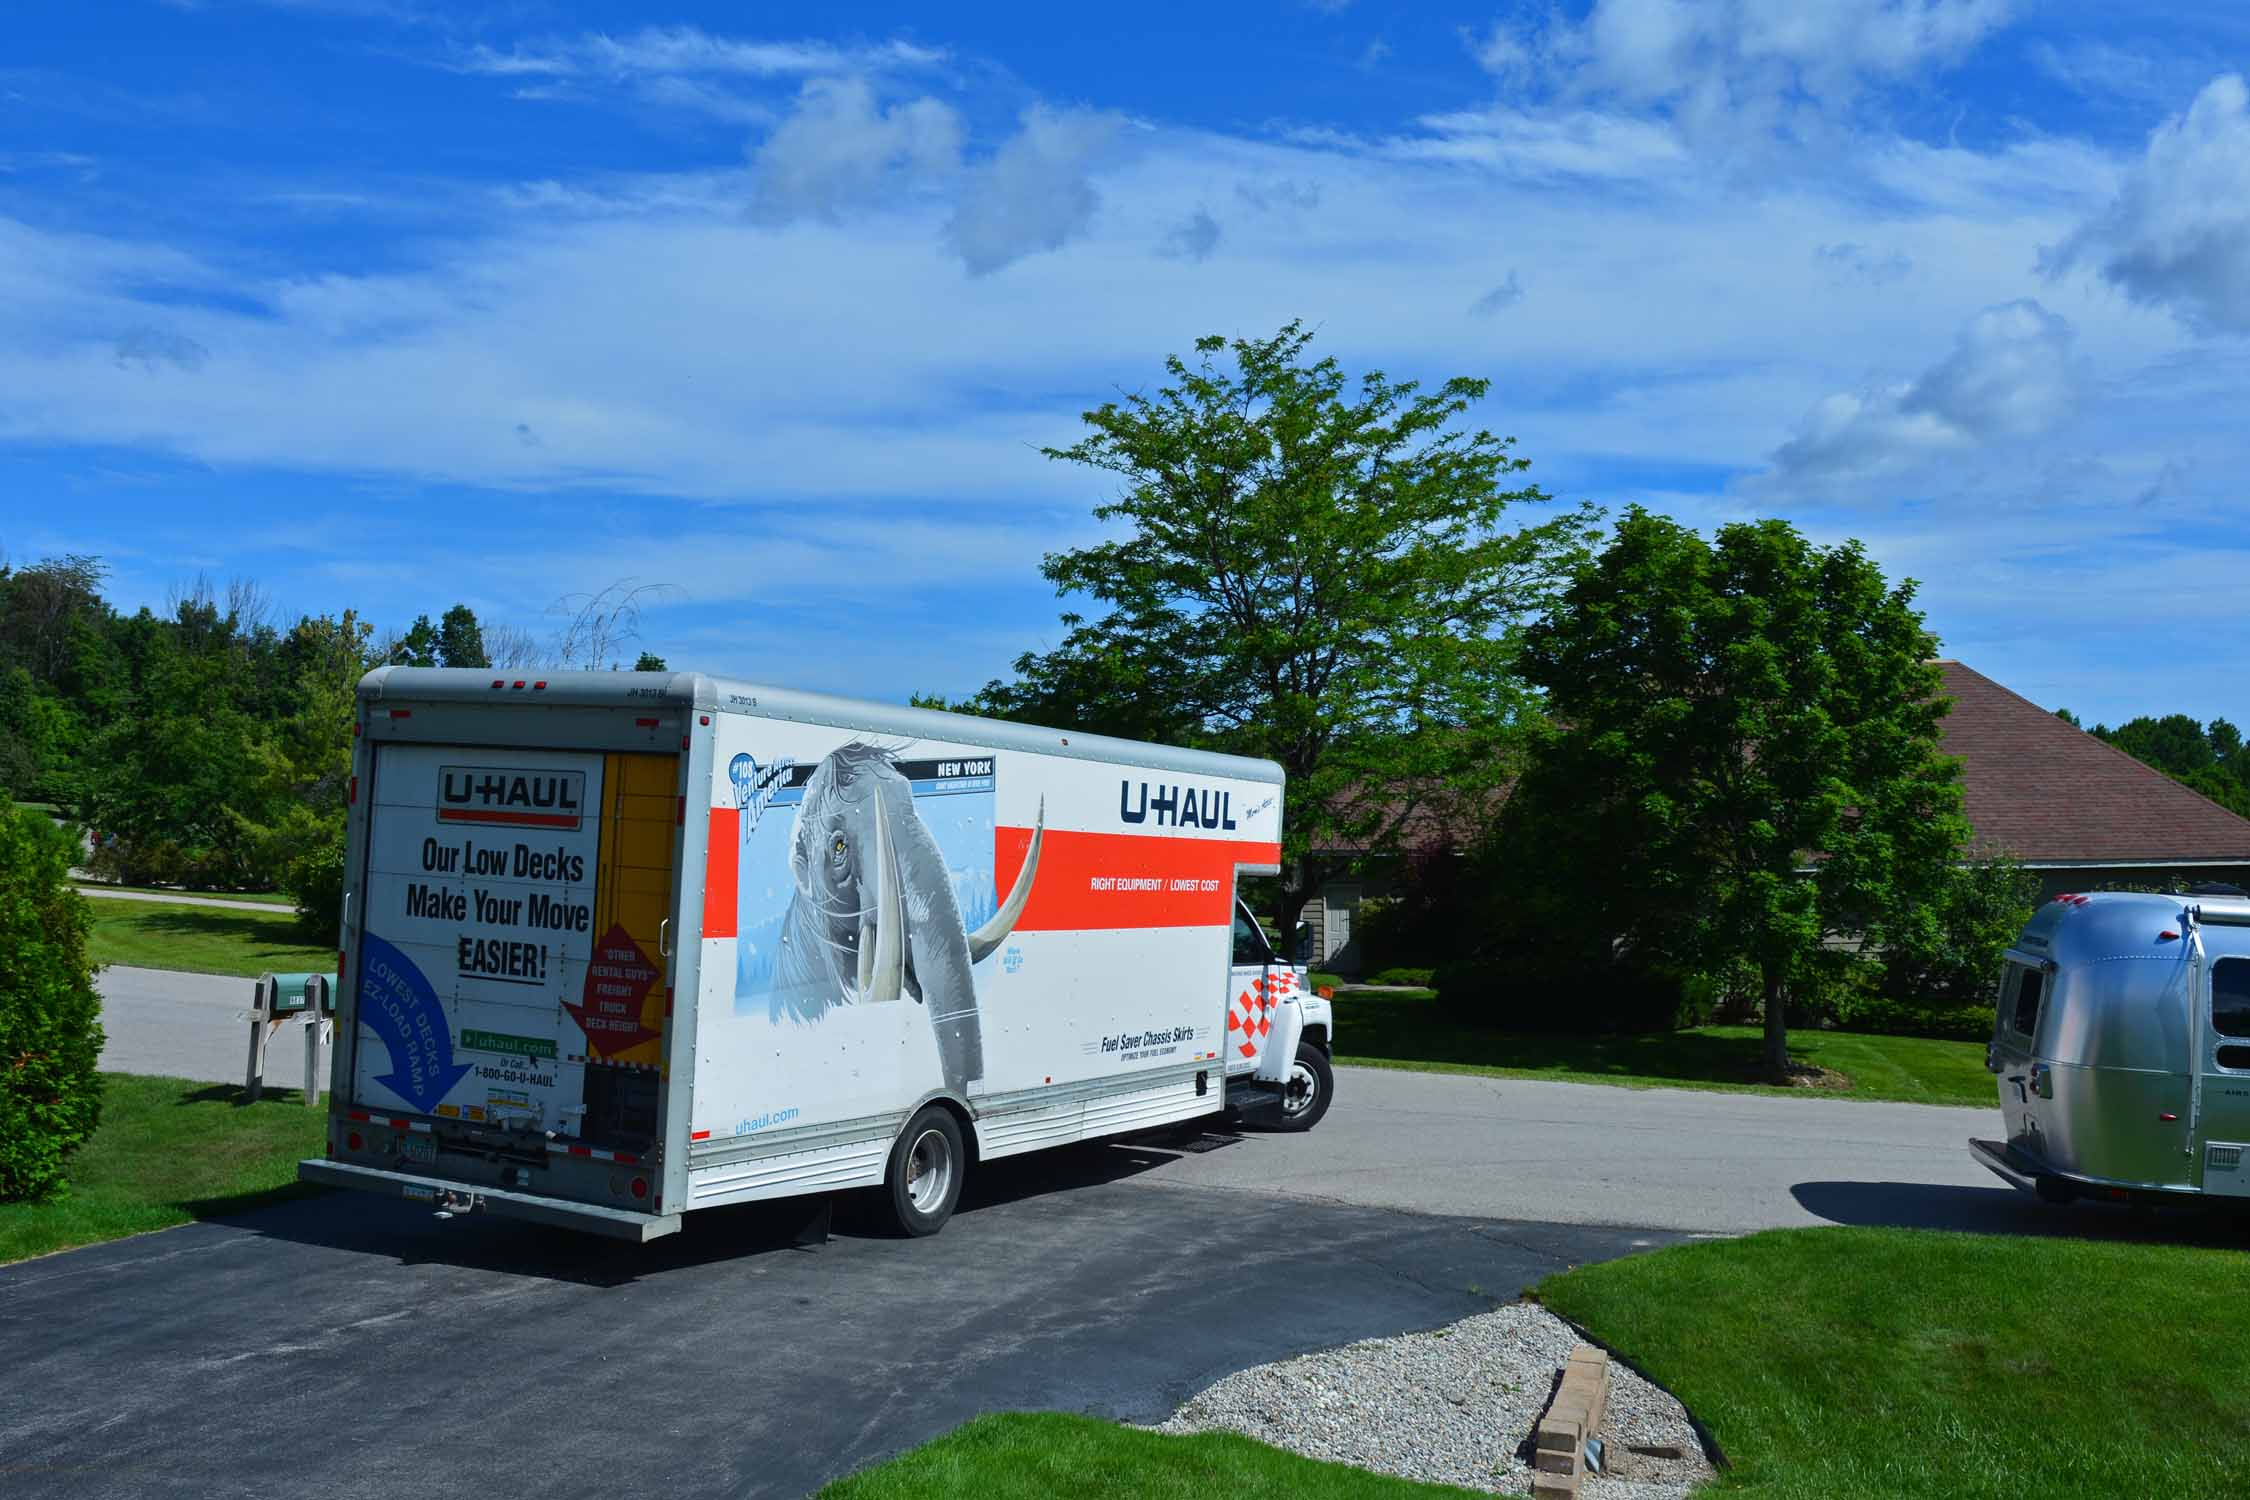 As the U-Haul truck pulls out, we will not be far behind as we all head to South Carolina.  All our worldly possession are headed for a storage unit somewhere in Seneca our expected new home.